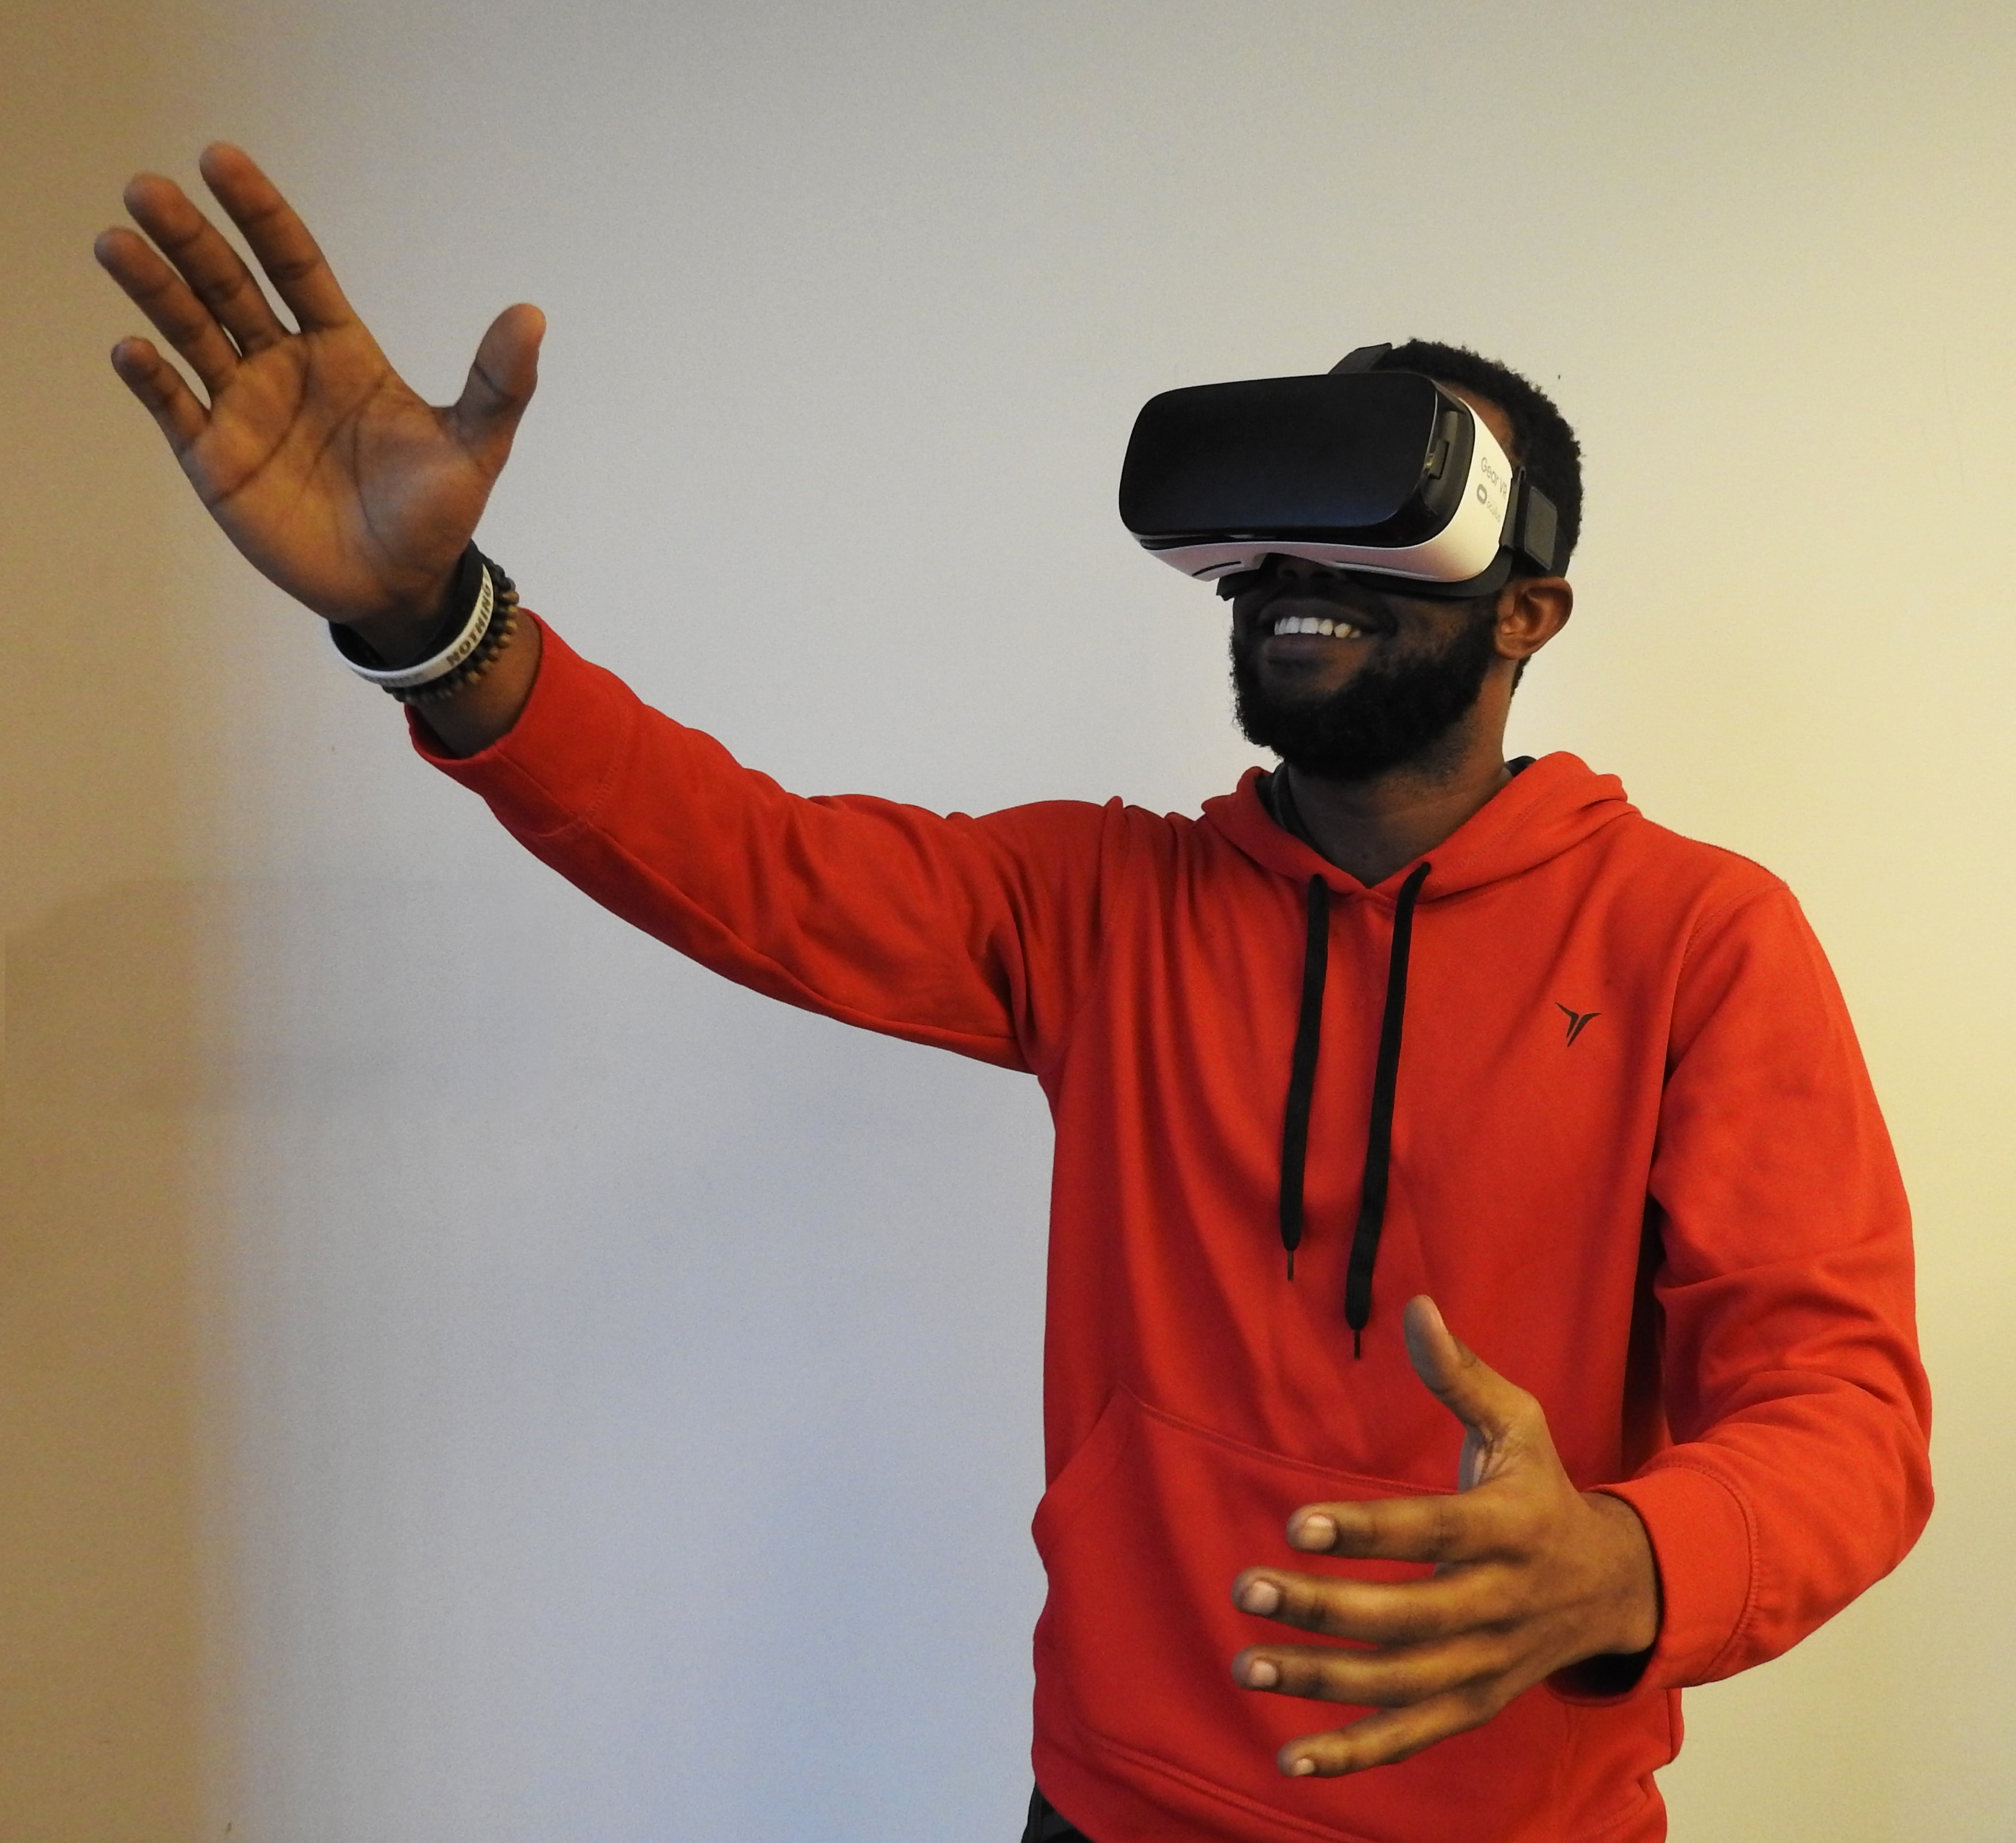 VR Games for Schizophrenia and mental health